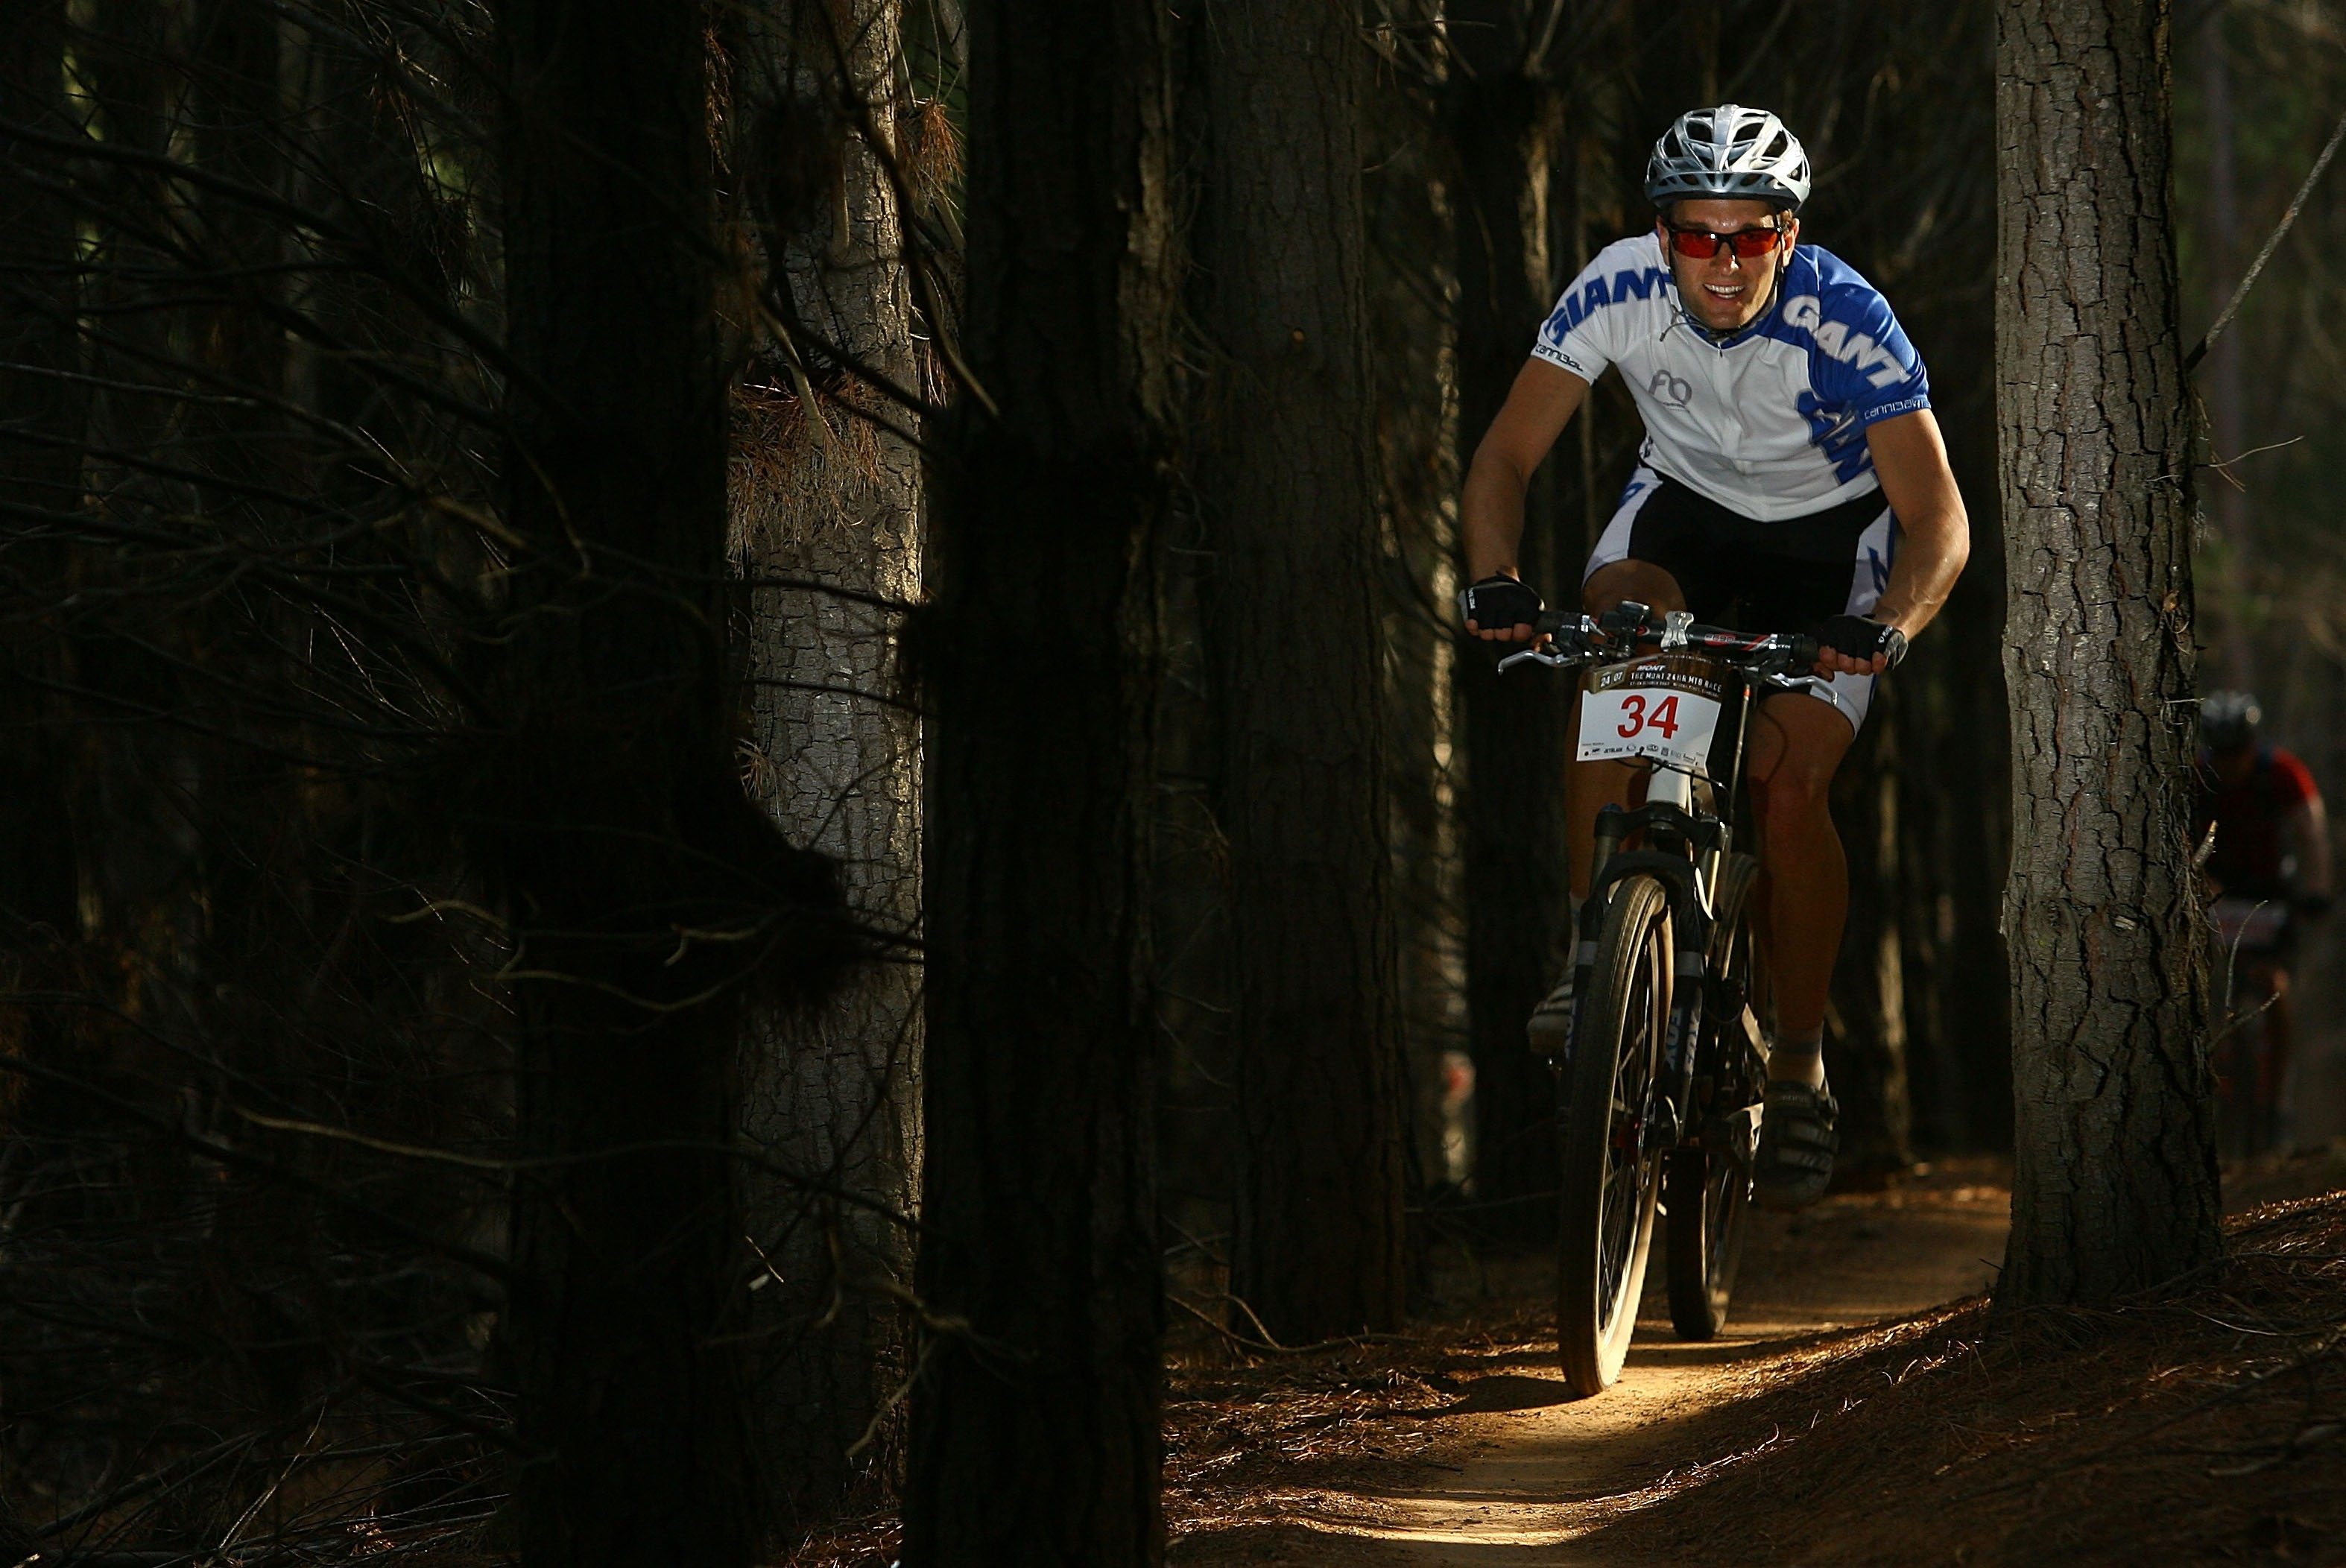 Daniel McKay (Giant) fast and focused in the singletrack